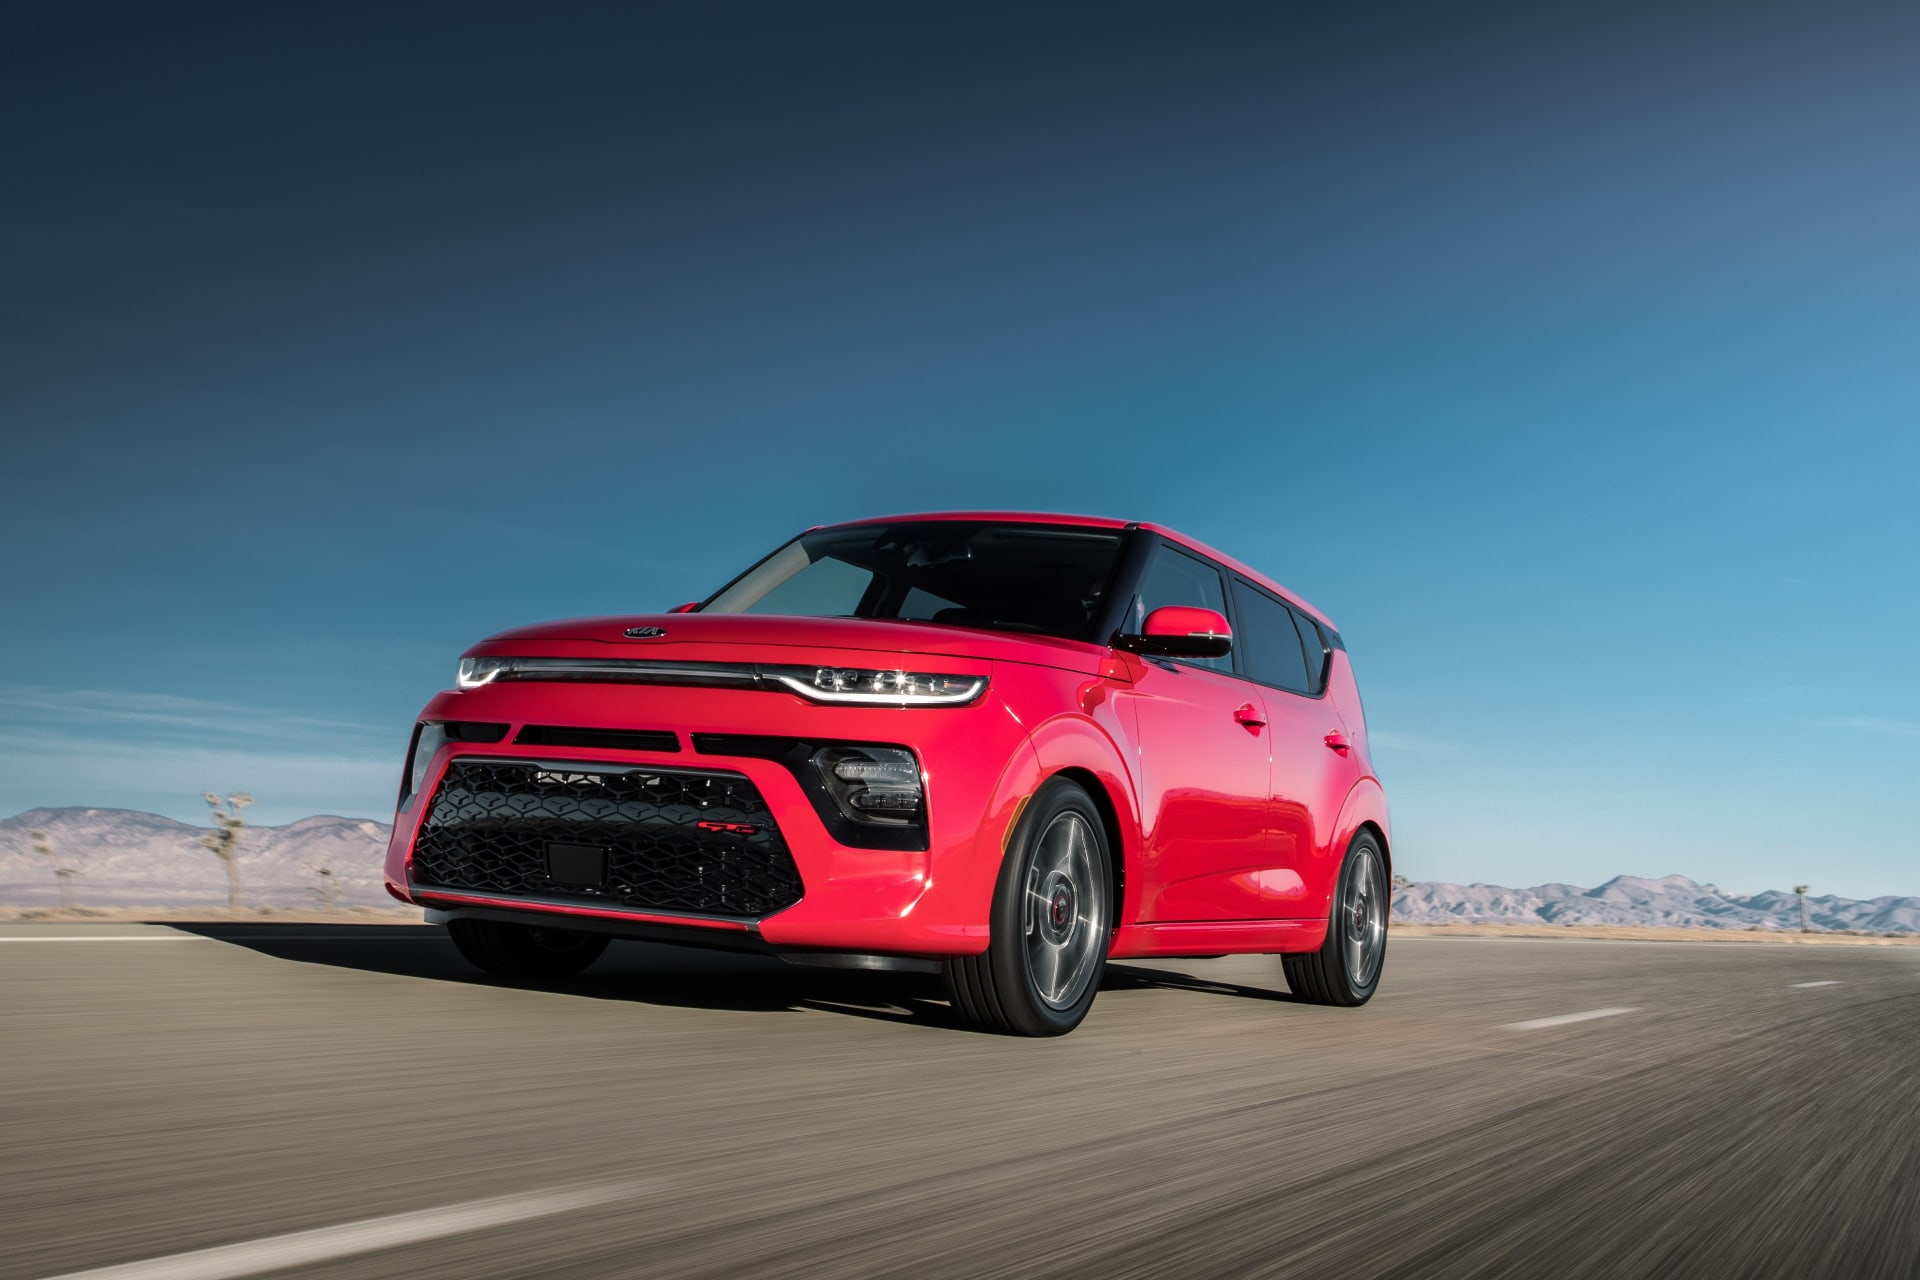 2020 Kia Soul: More Flavors Of Cute Non-Ute | News | Cars - 2022 Kia Soul Engine 1.6 L 4-Cylinder Specs Options, Rumor